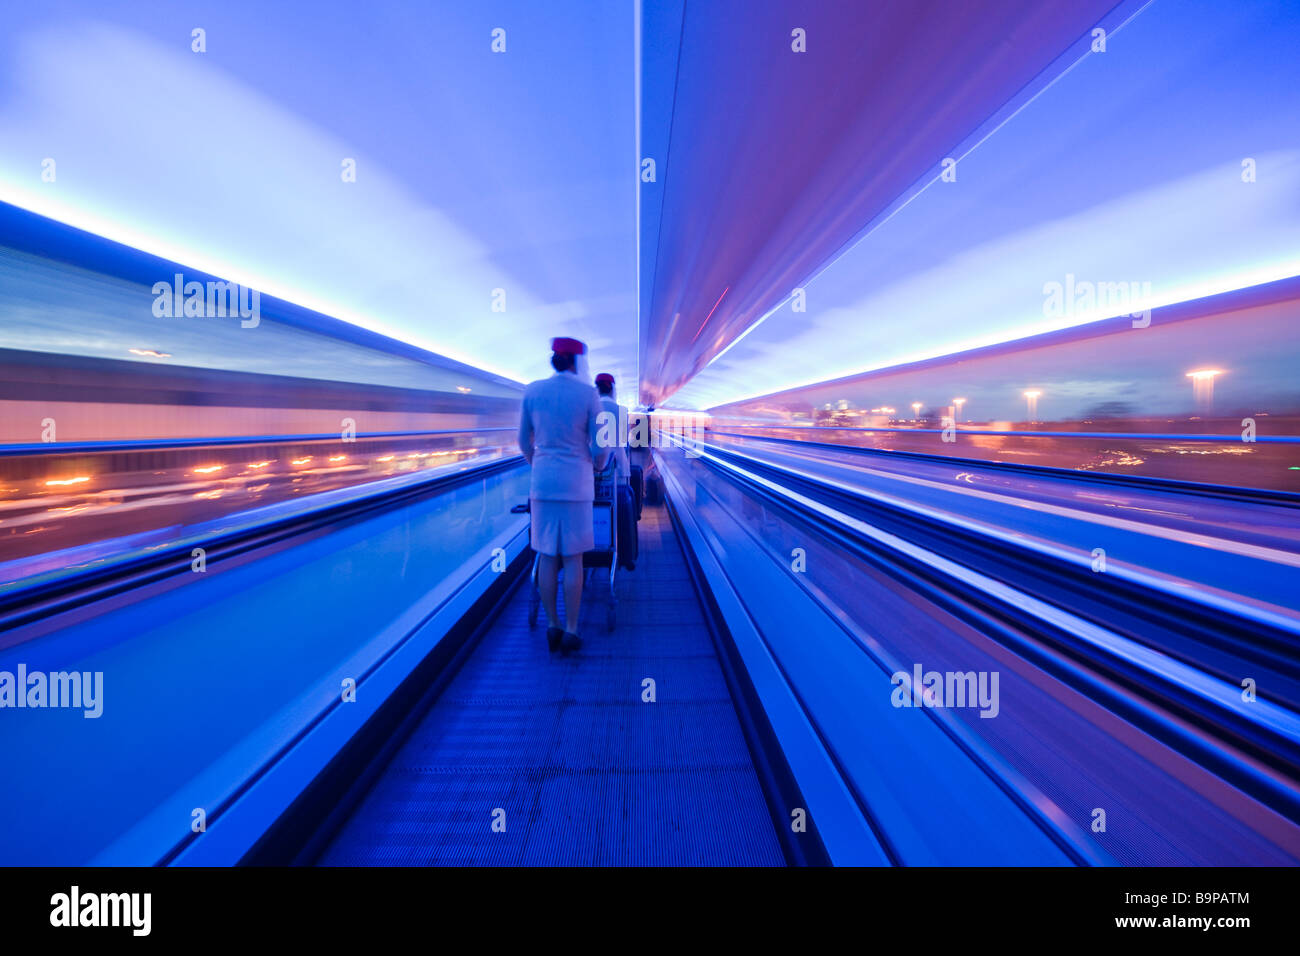 Manchester Airport UK the passenger connection walkways with travelators at night air hostesses - Stock Image